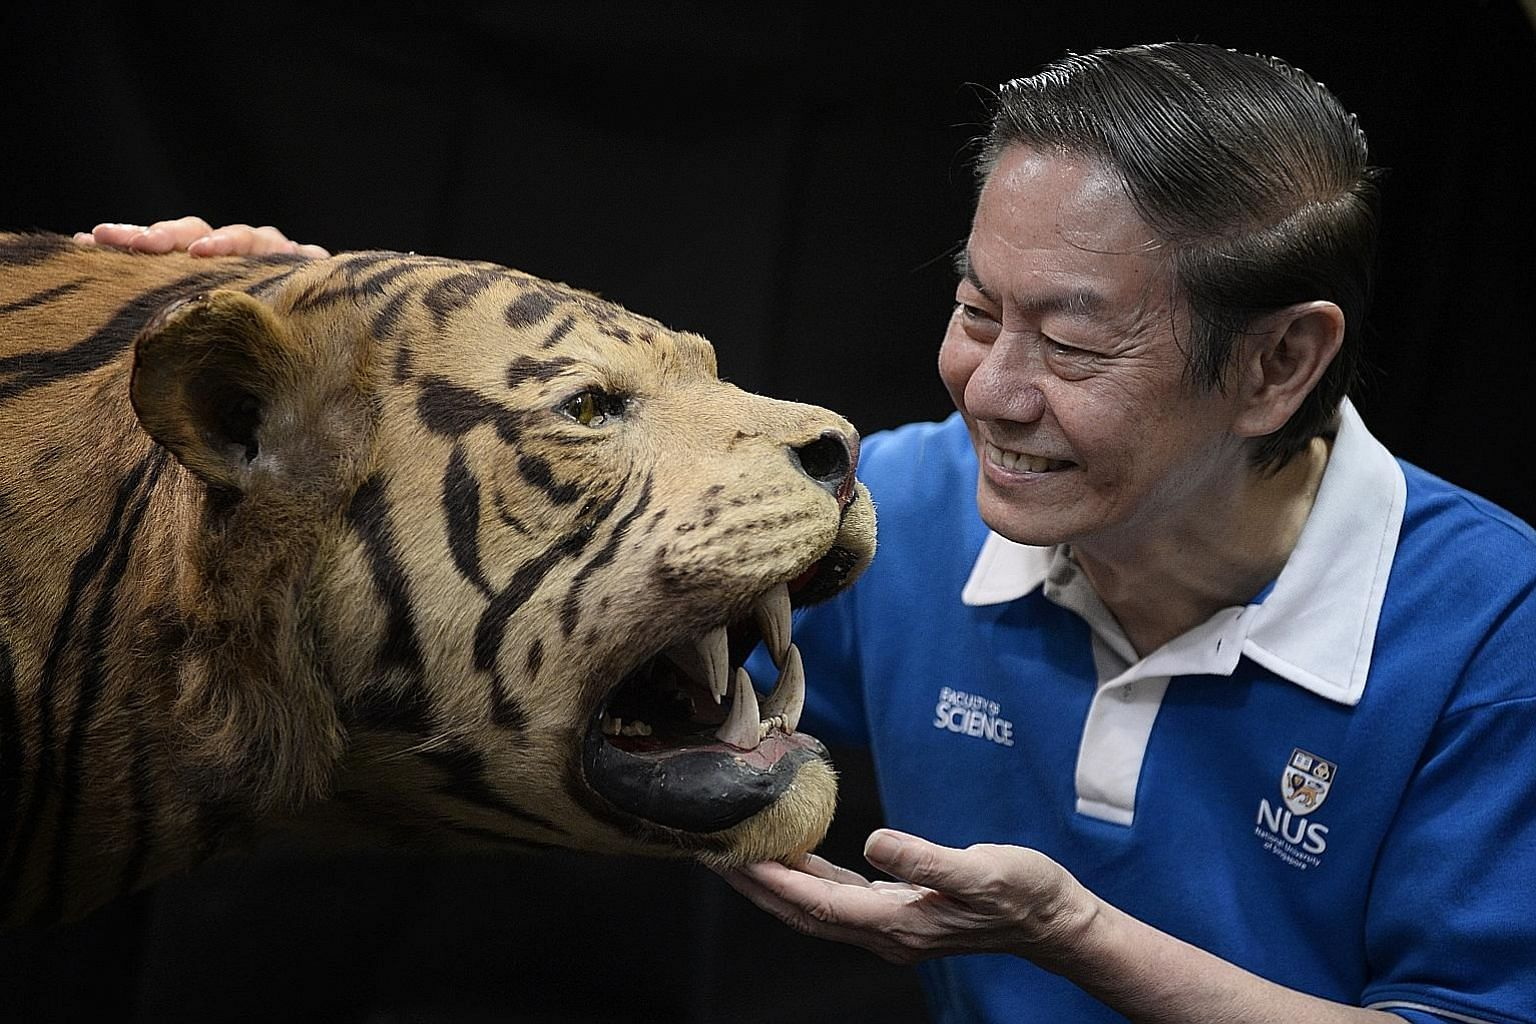 Professor Leo Tan with a stuffed tiger at the Lee Kong Chian Natural History Museum. Prof Tan and his former student, Professor Peter Ng, were instrumental in setting up Singapore's only natural history museum.